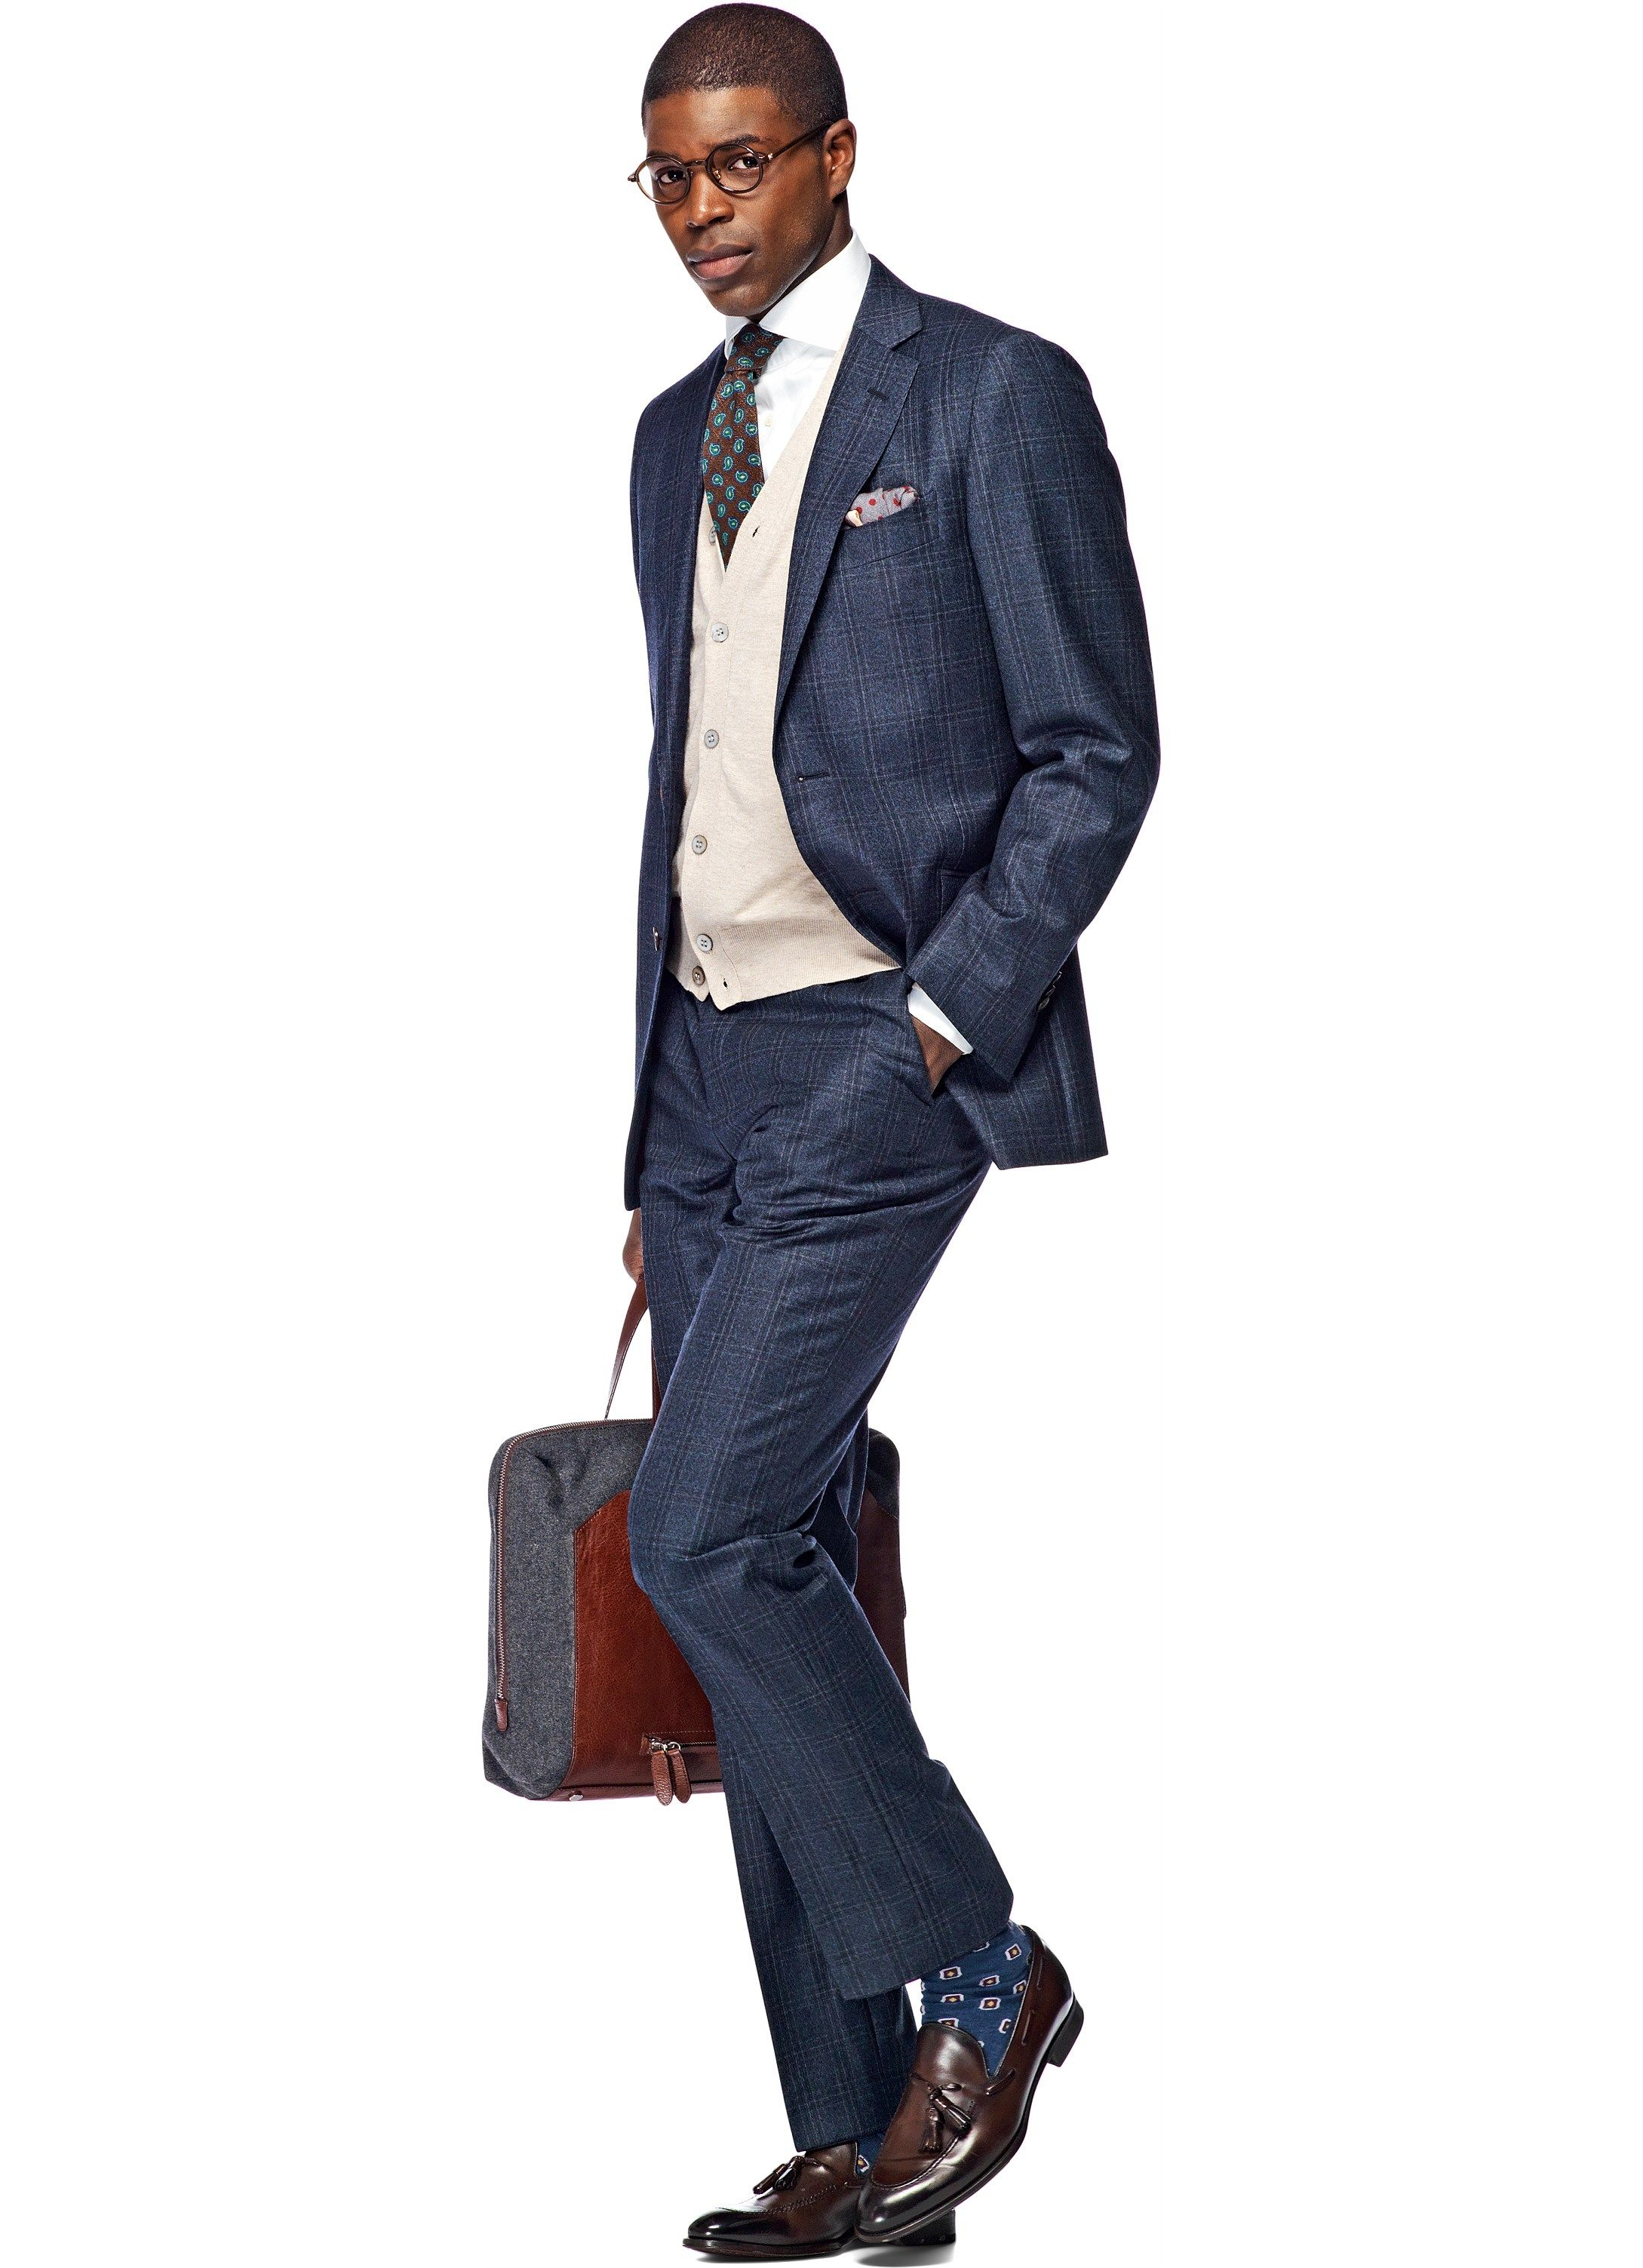 db0567626c8607 Suit Blue Check Sienna P3672i | Suitsupply Online Store | suits ...